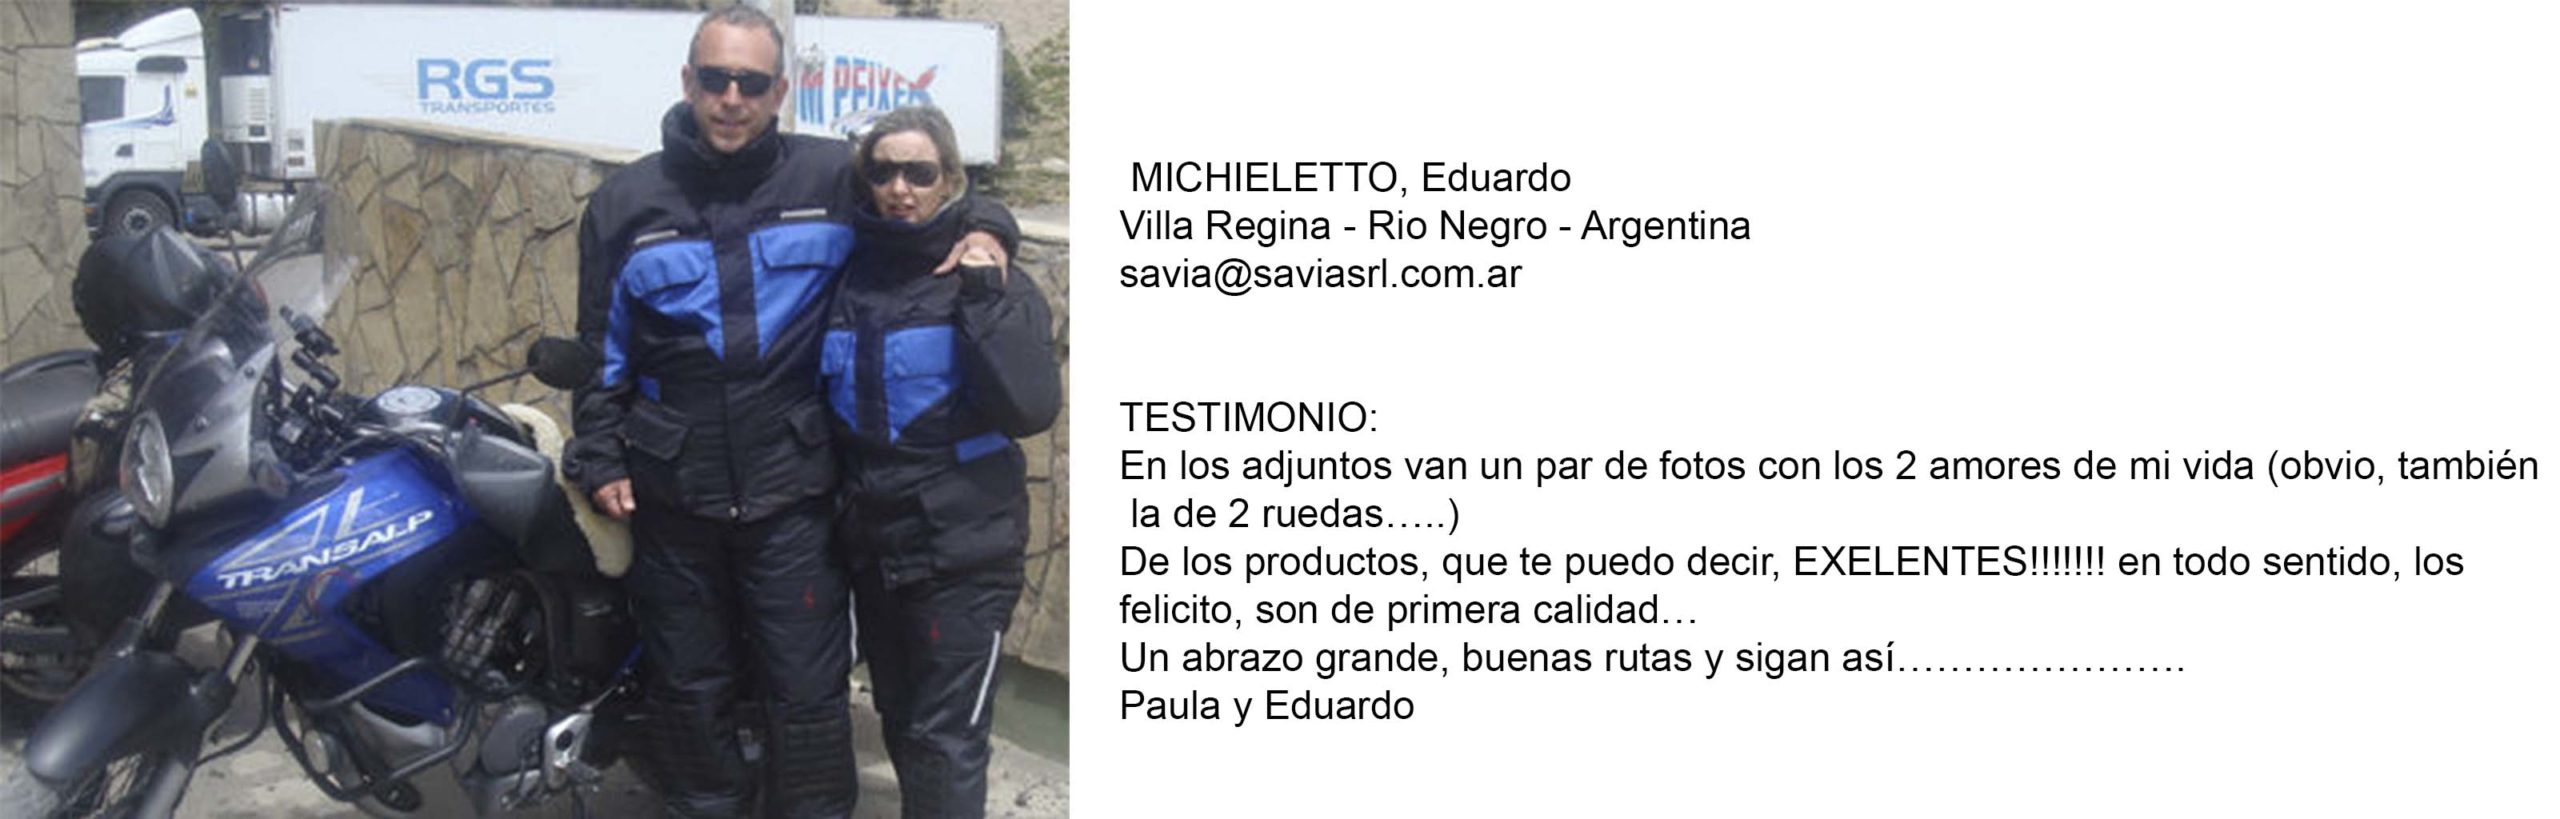 Testimonio Michieletto